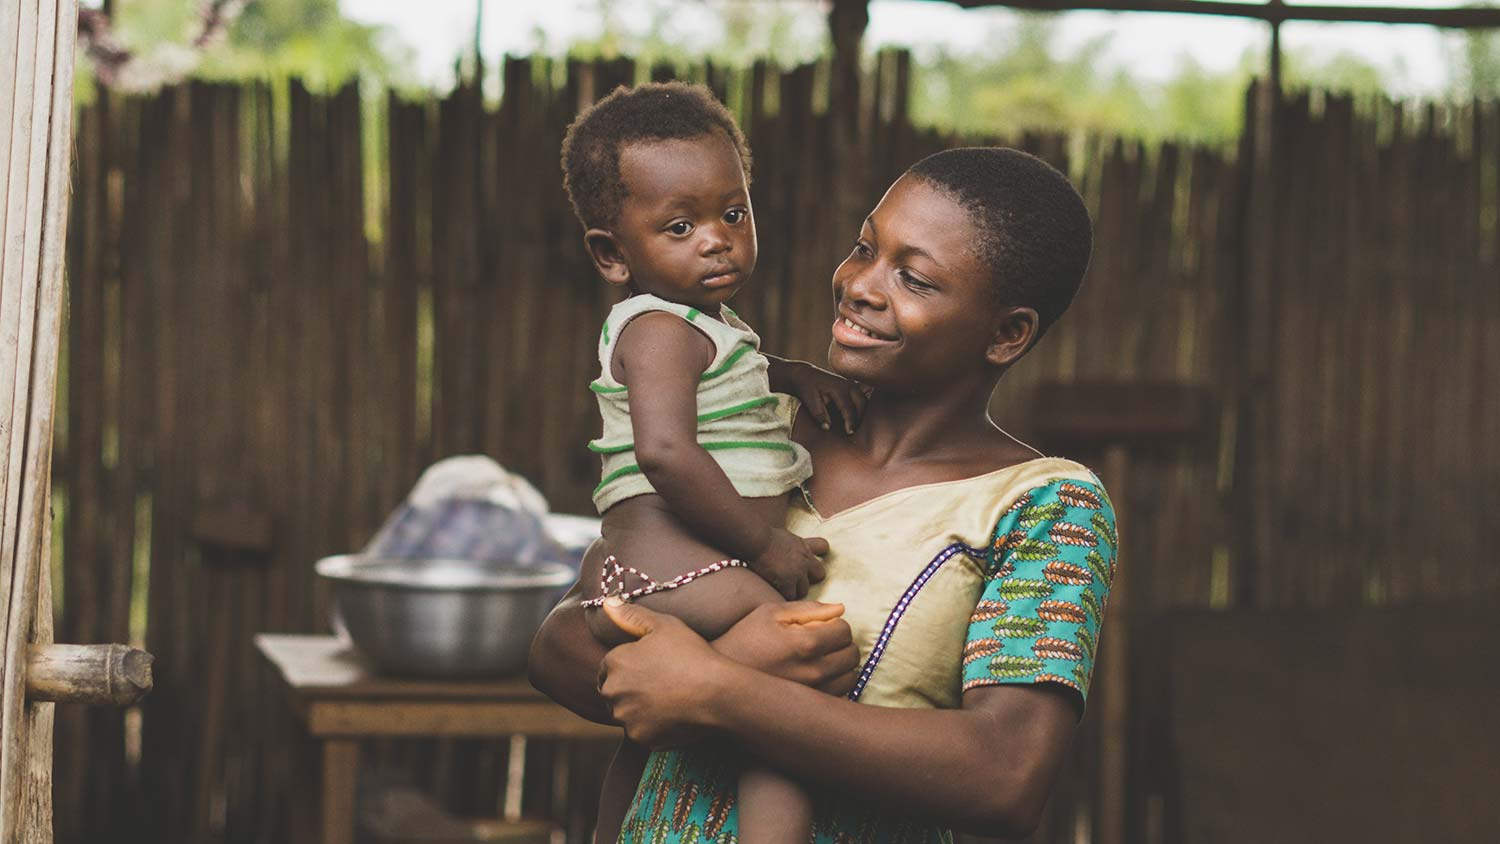 Siyakholwa-support-care-centre_COVID-19-PANDEMIC-HUNGER-RELIEF--1500-x-844